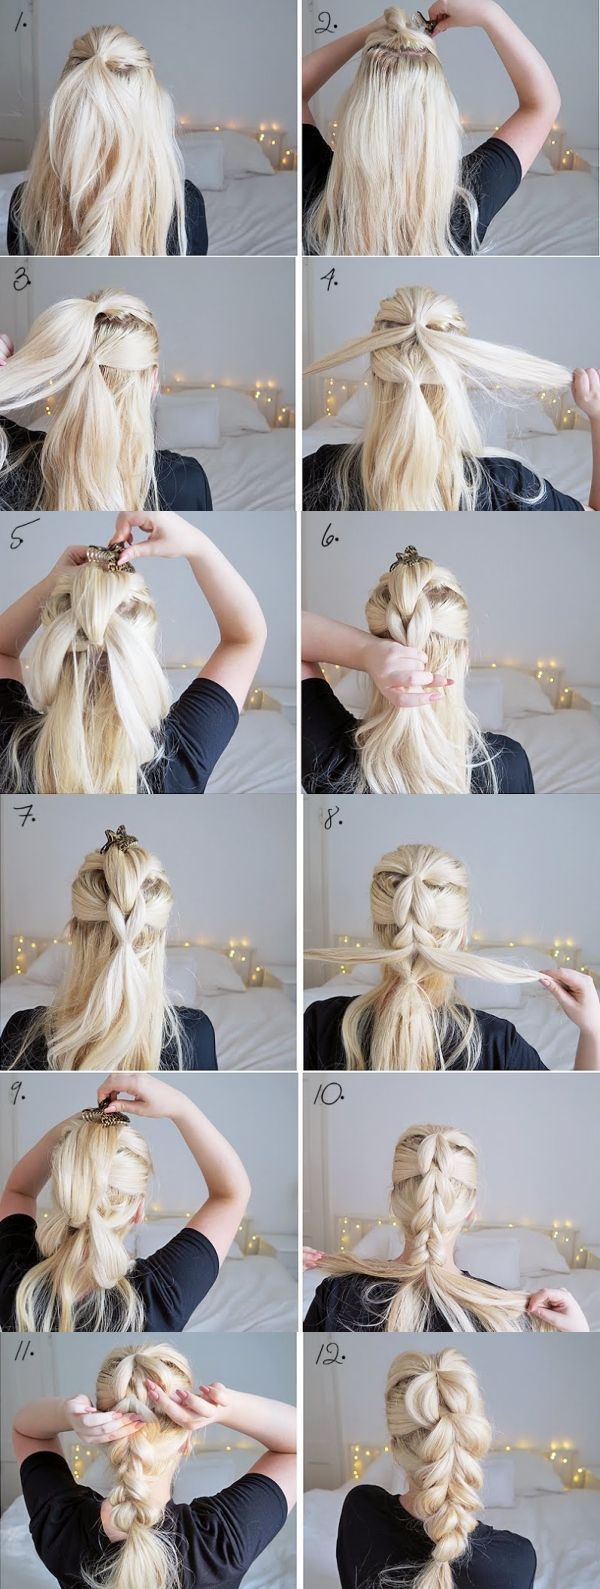 THE CHUNKY BRAID   EASY HAIRSTYLES   STEP BY STEP HAIRSTYLES   HAIRSTYLE TUTORIA...